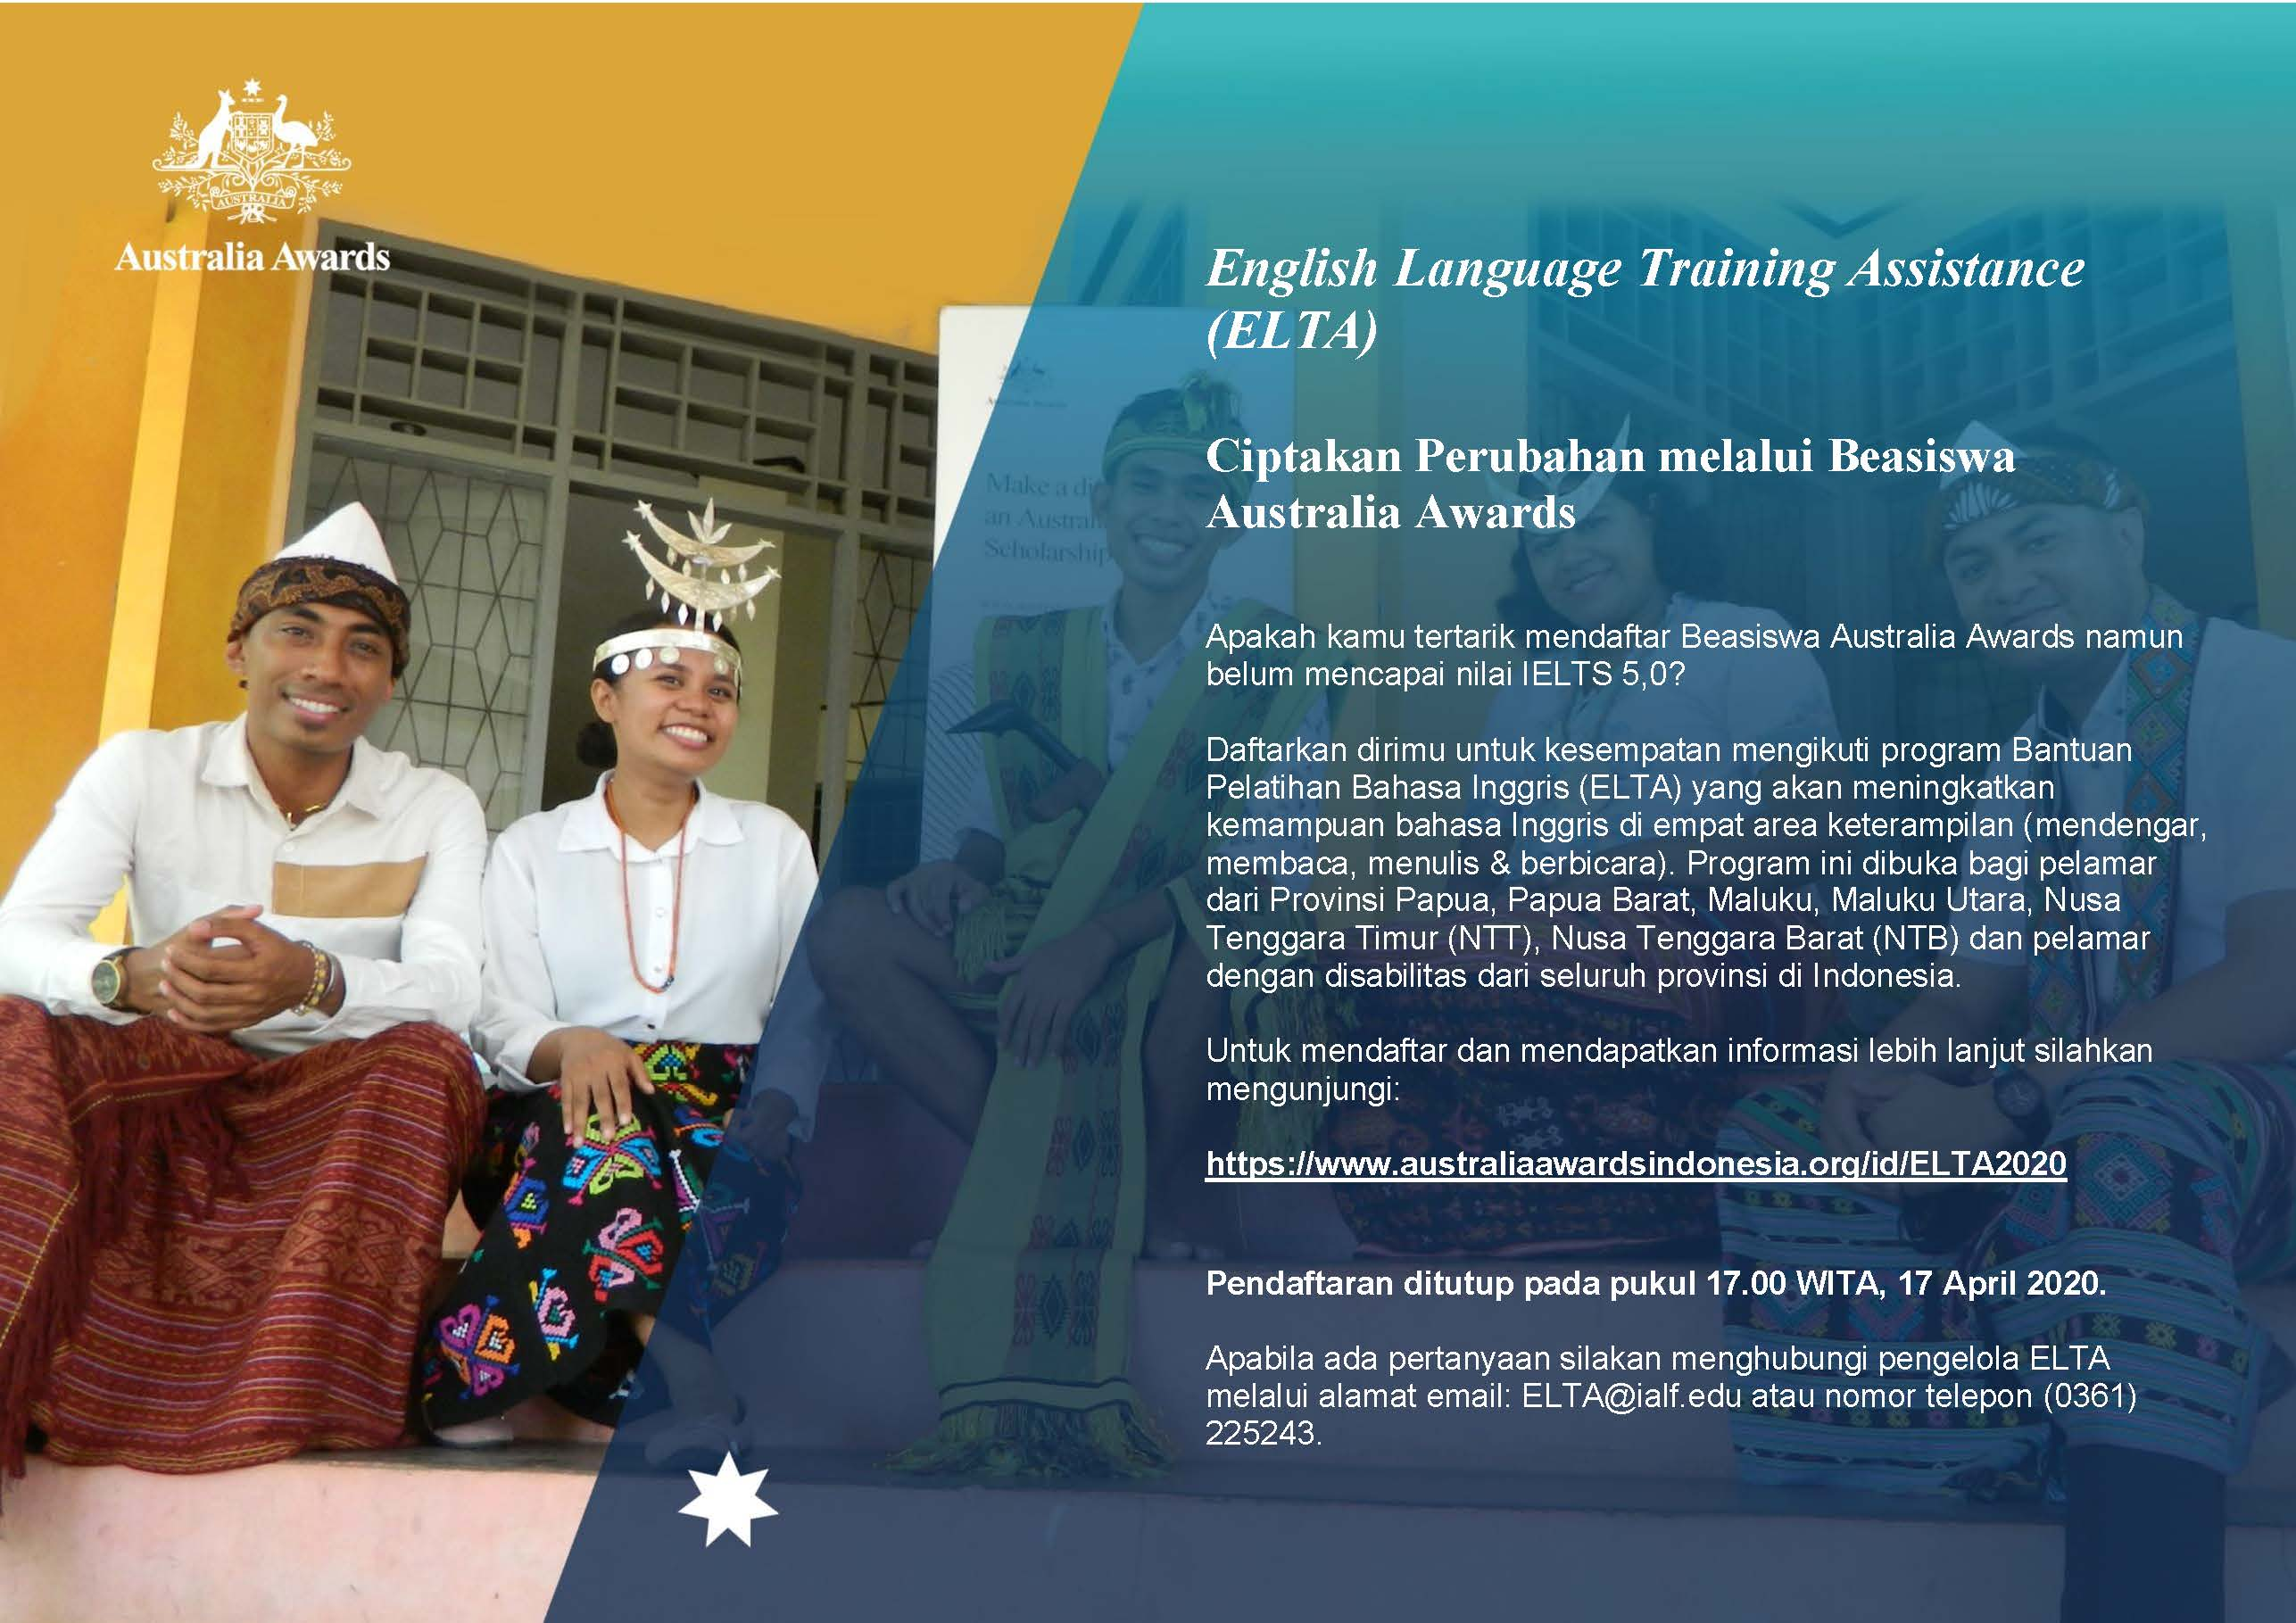 Applications Open for the English Language Training Assistance